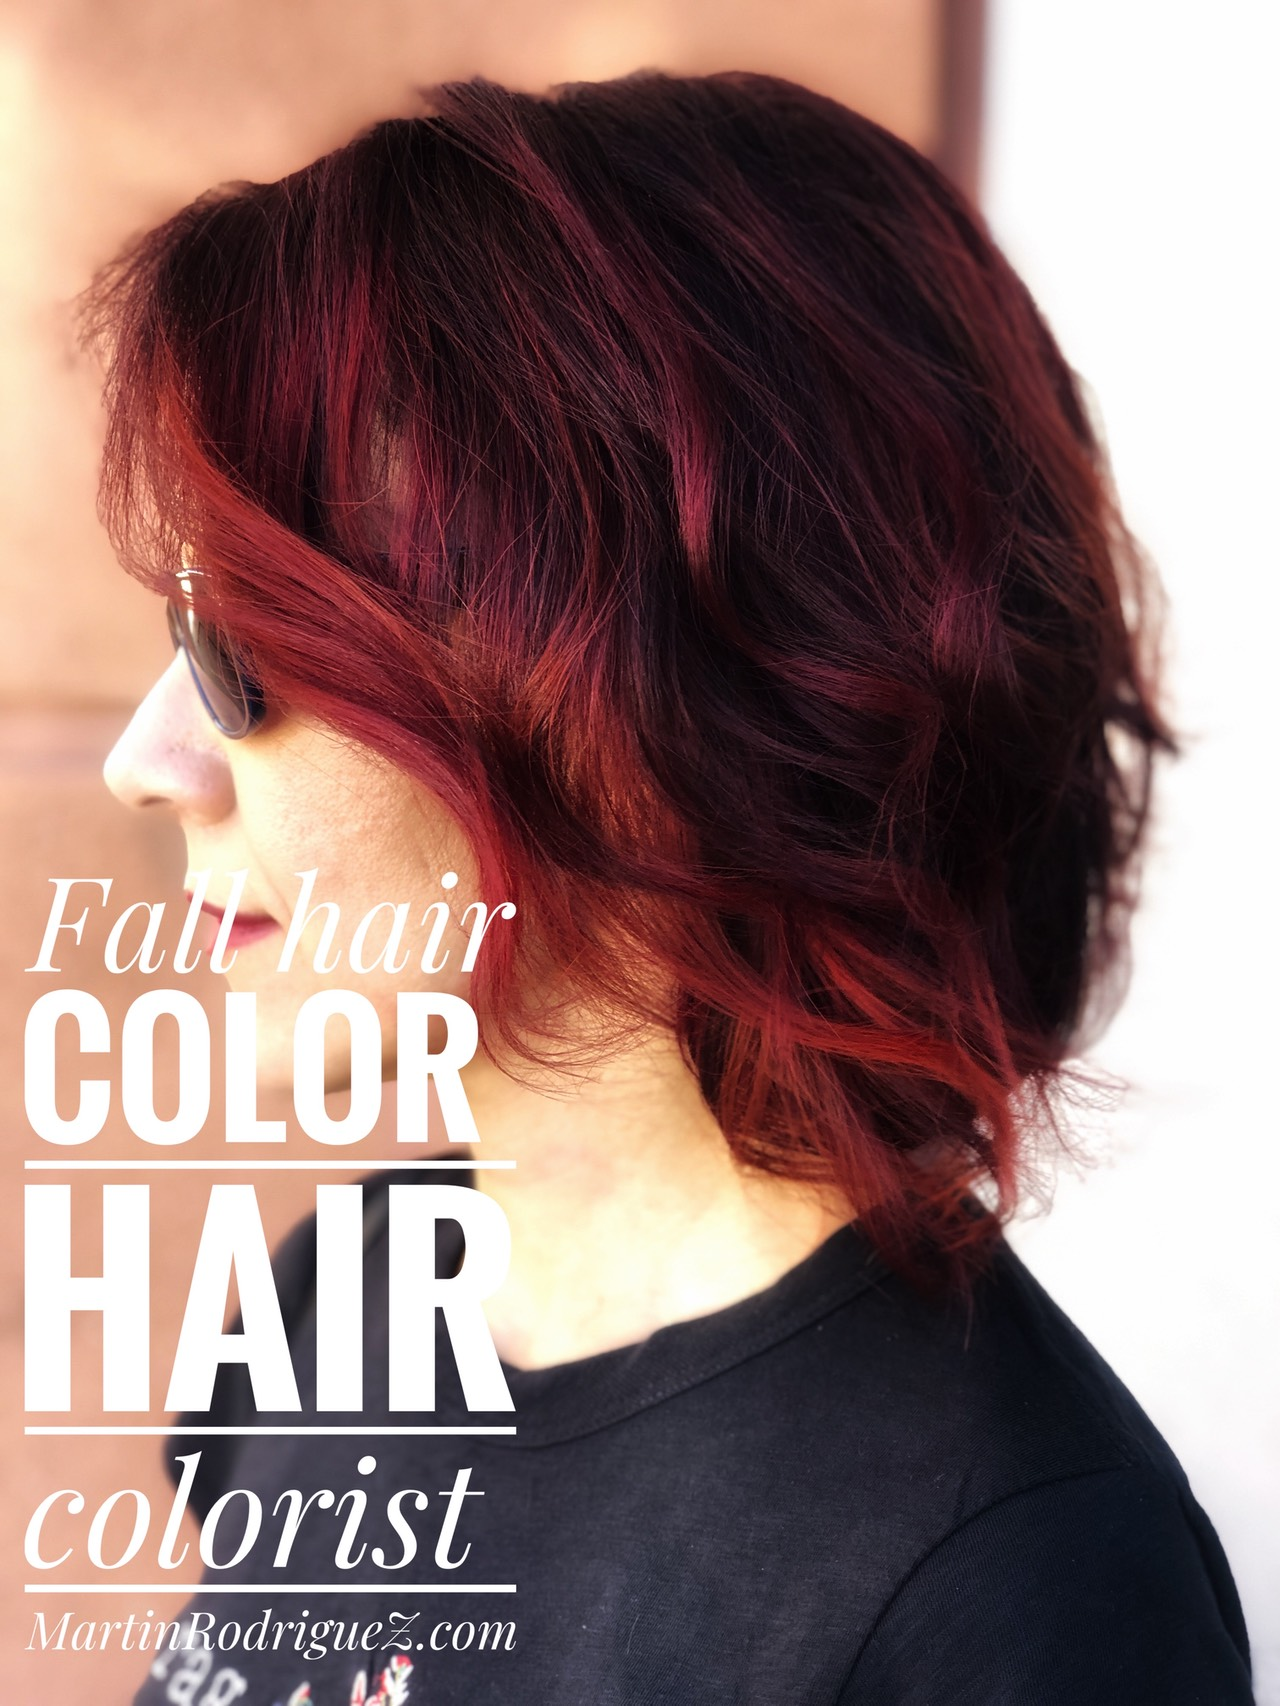 red hair color images.html